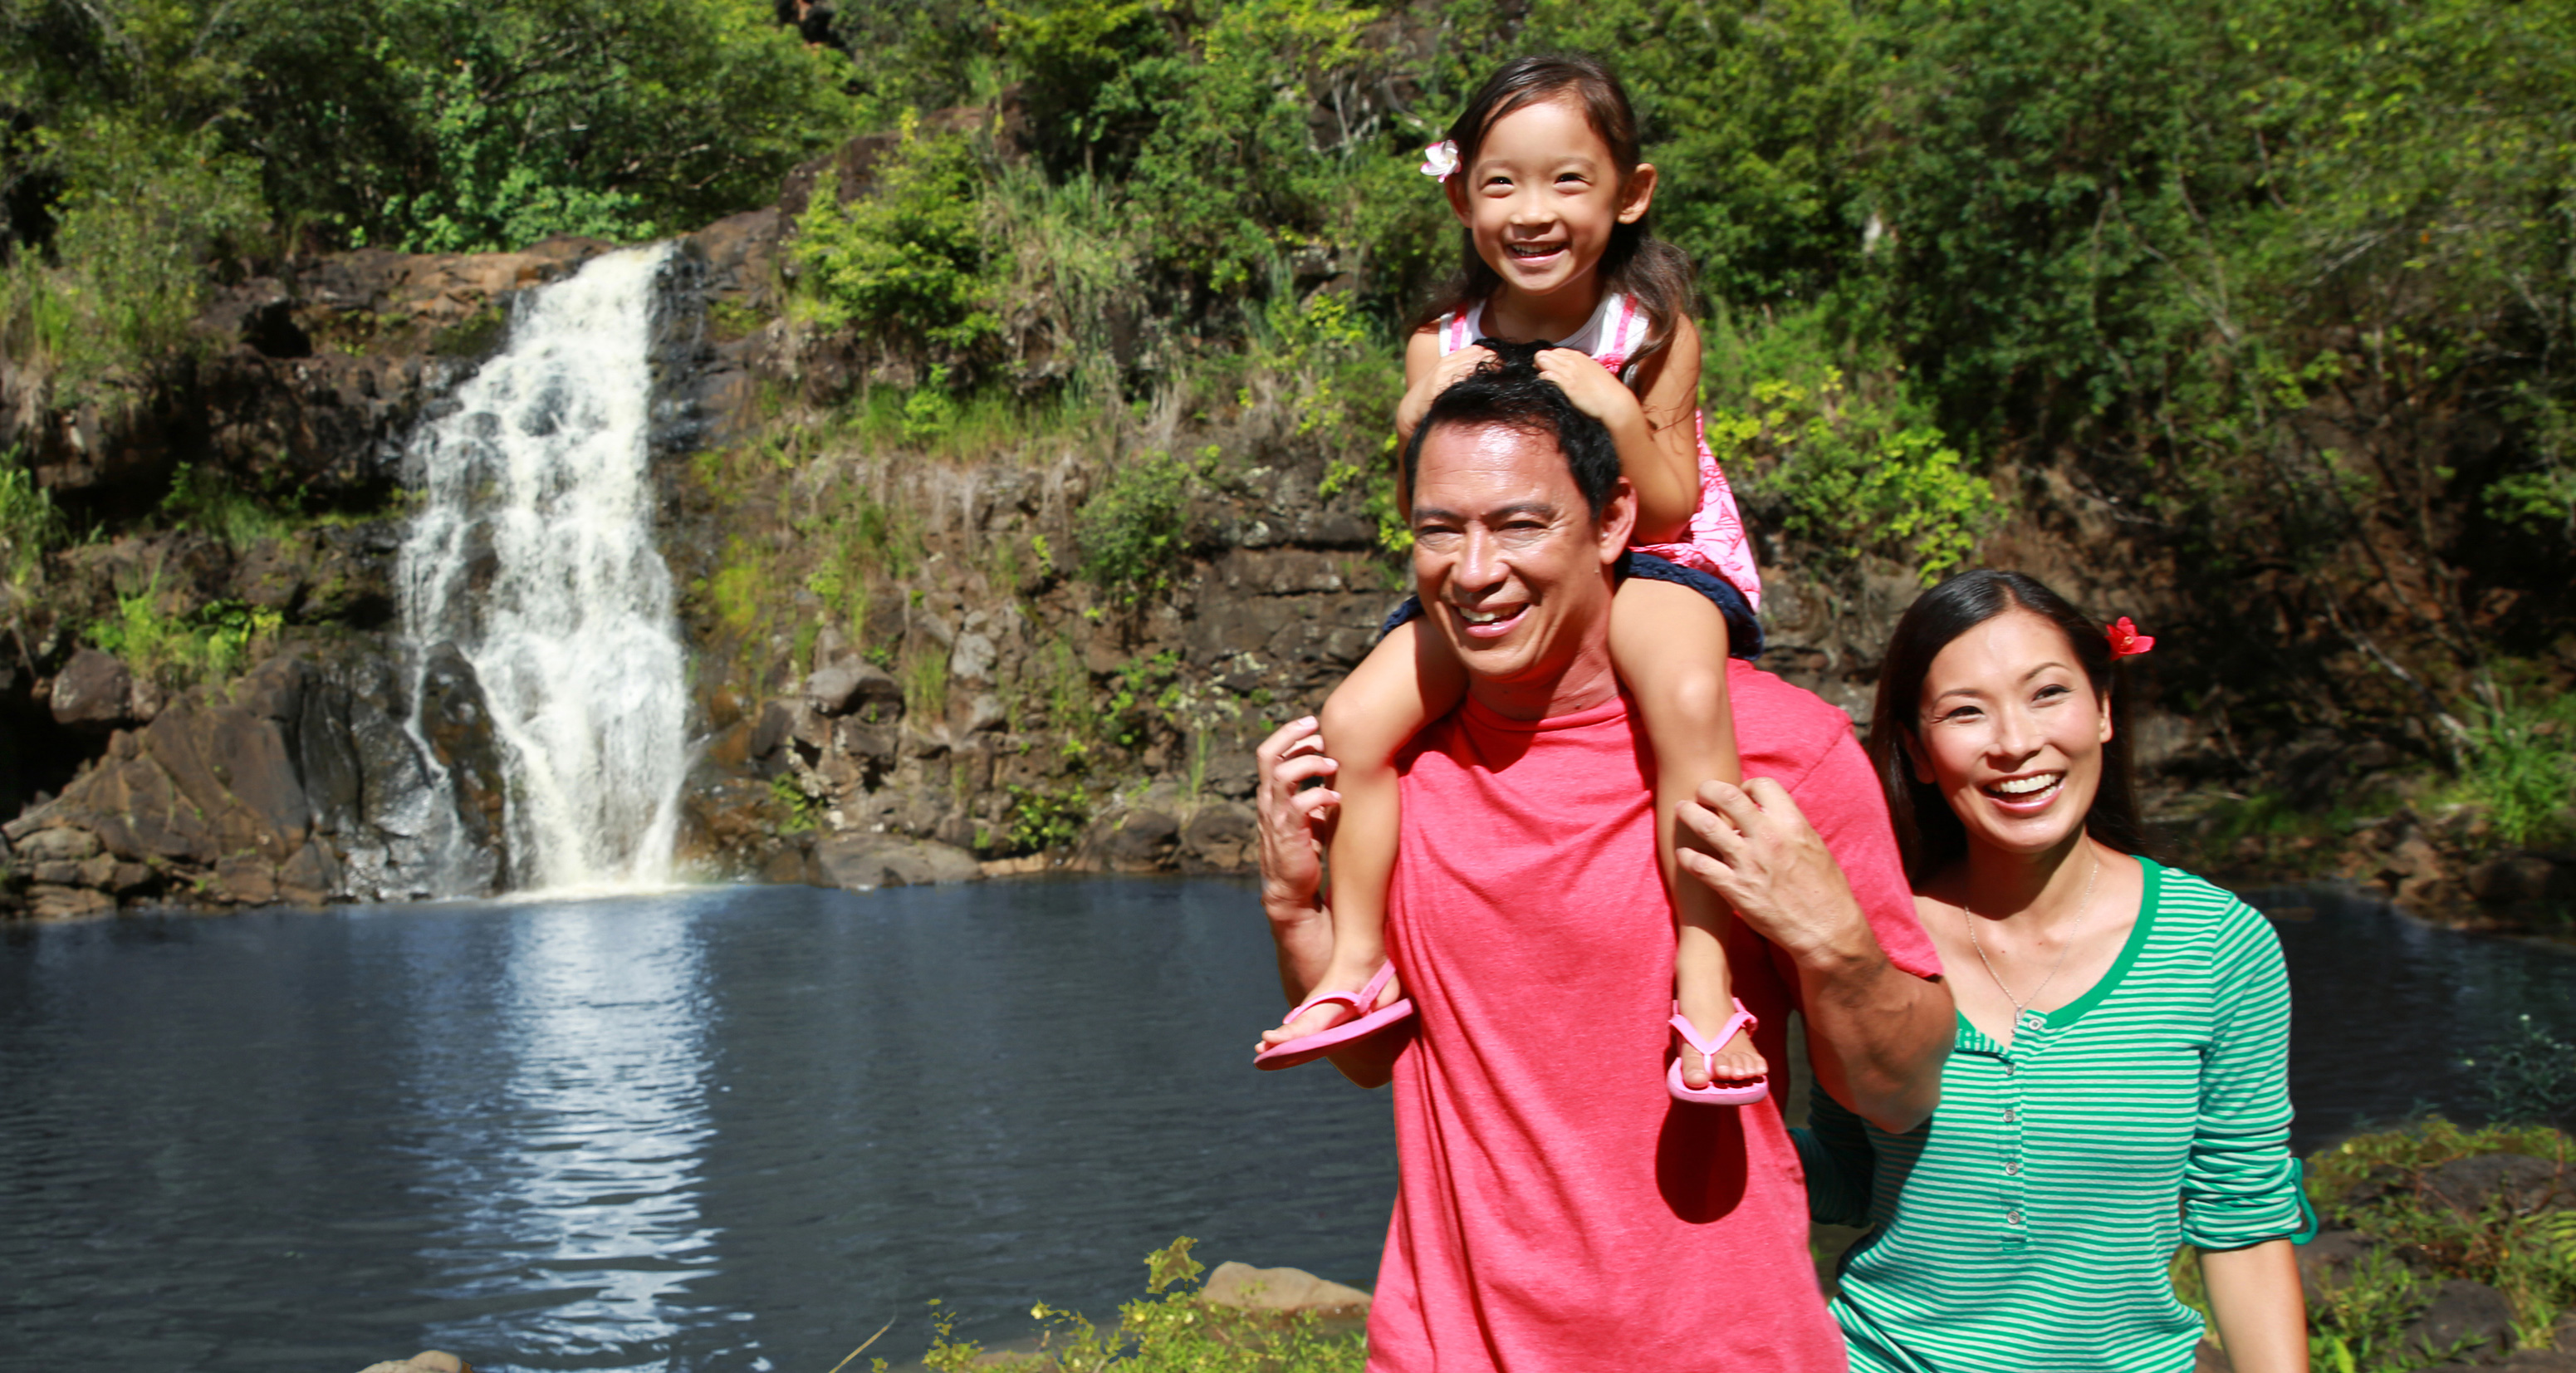 A woman and a man with a young girl on his shoulders walk beside a pond with a waterfall in the background